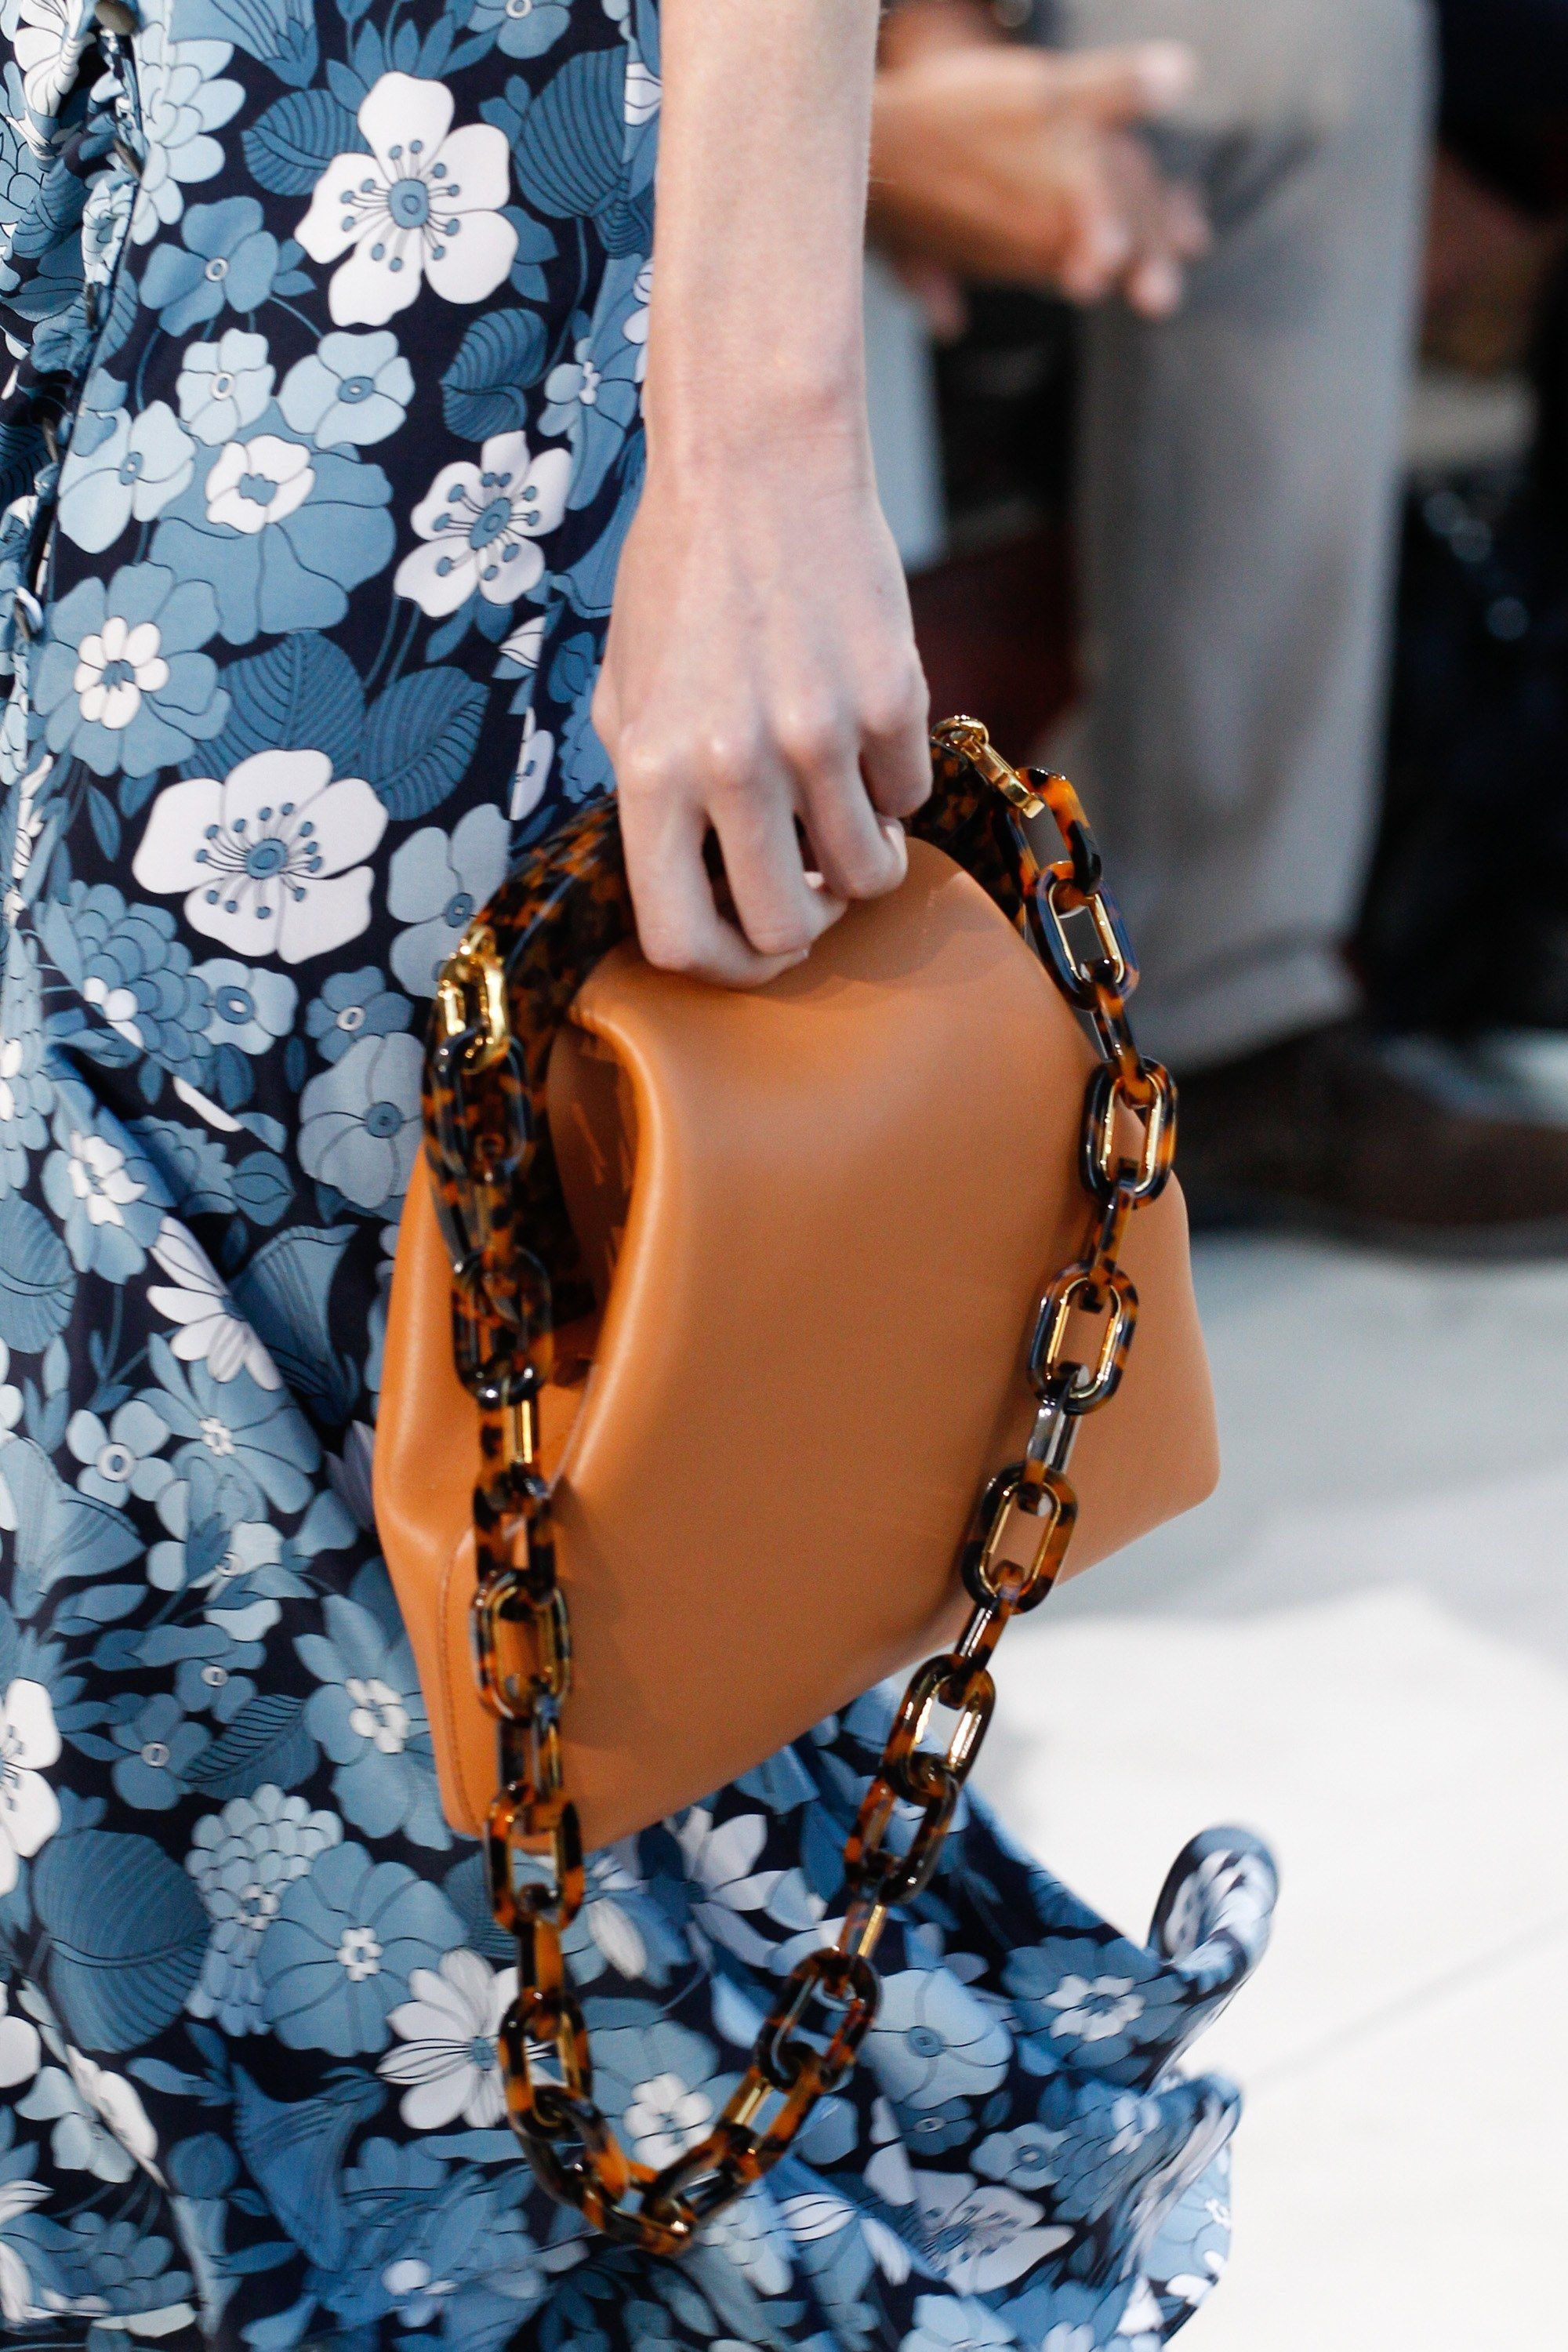 Michael Kors Collection Spring 2017 Ready-to-Wear Fashion Show Details - Vogue